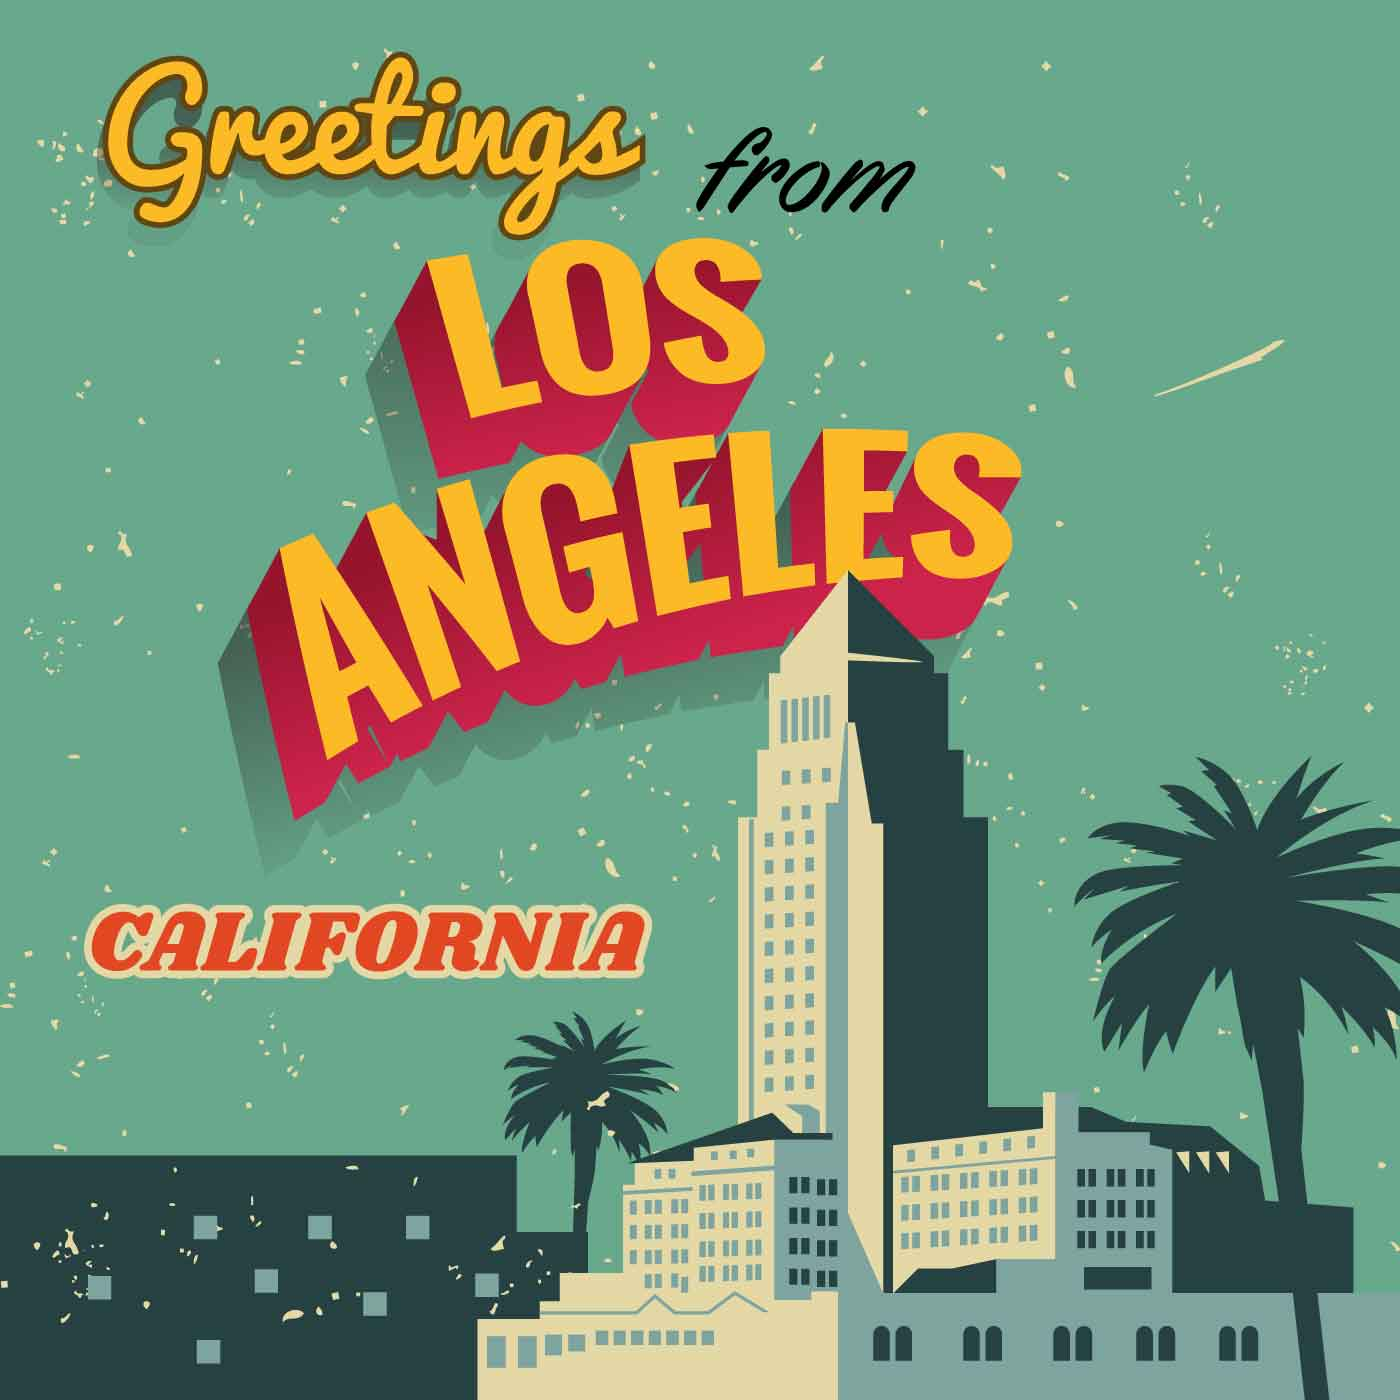 Greetings from california poster m4hsunfo